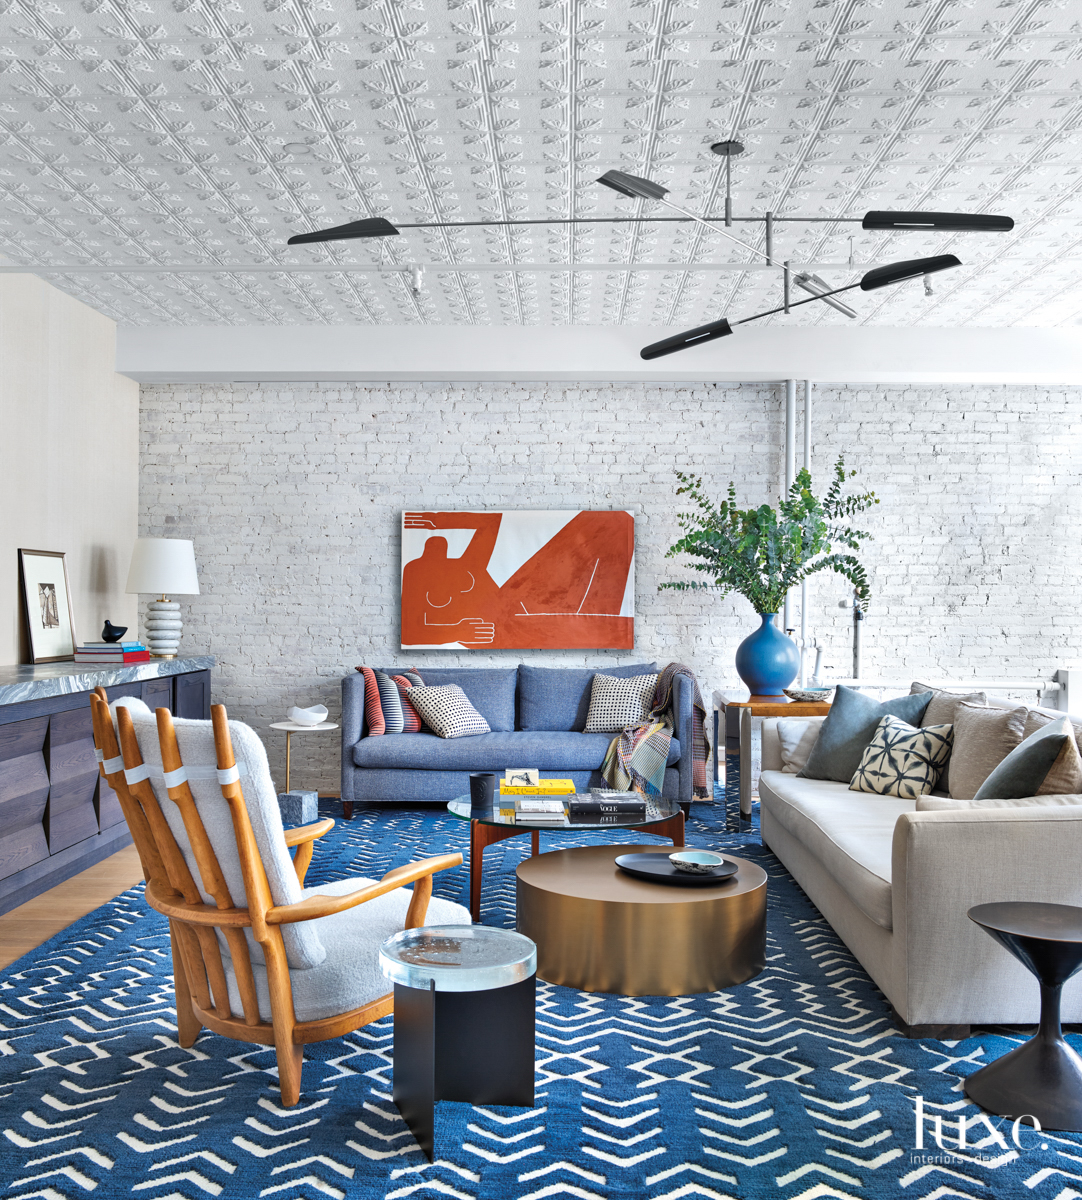 liivng room with textured ceiling, blue rug and orange art